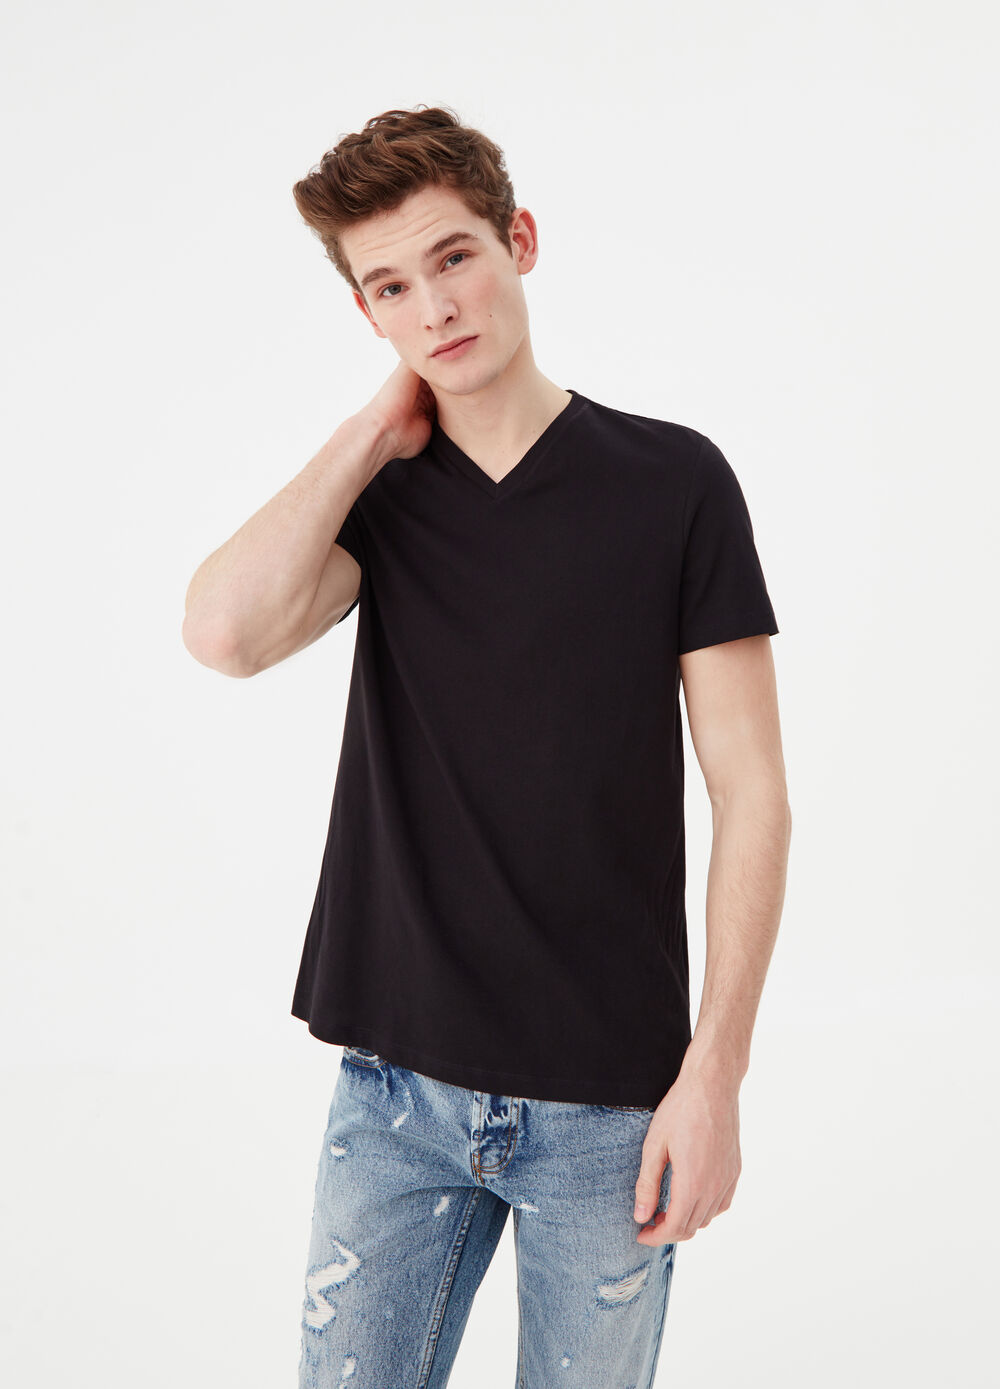 T-shirt in soft cotton jersey